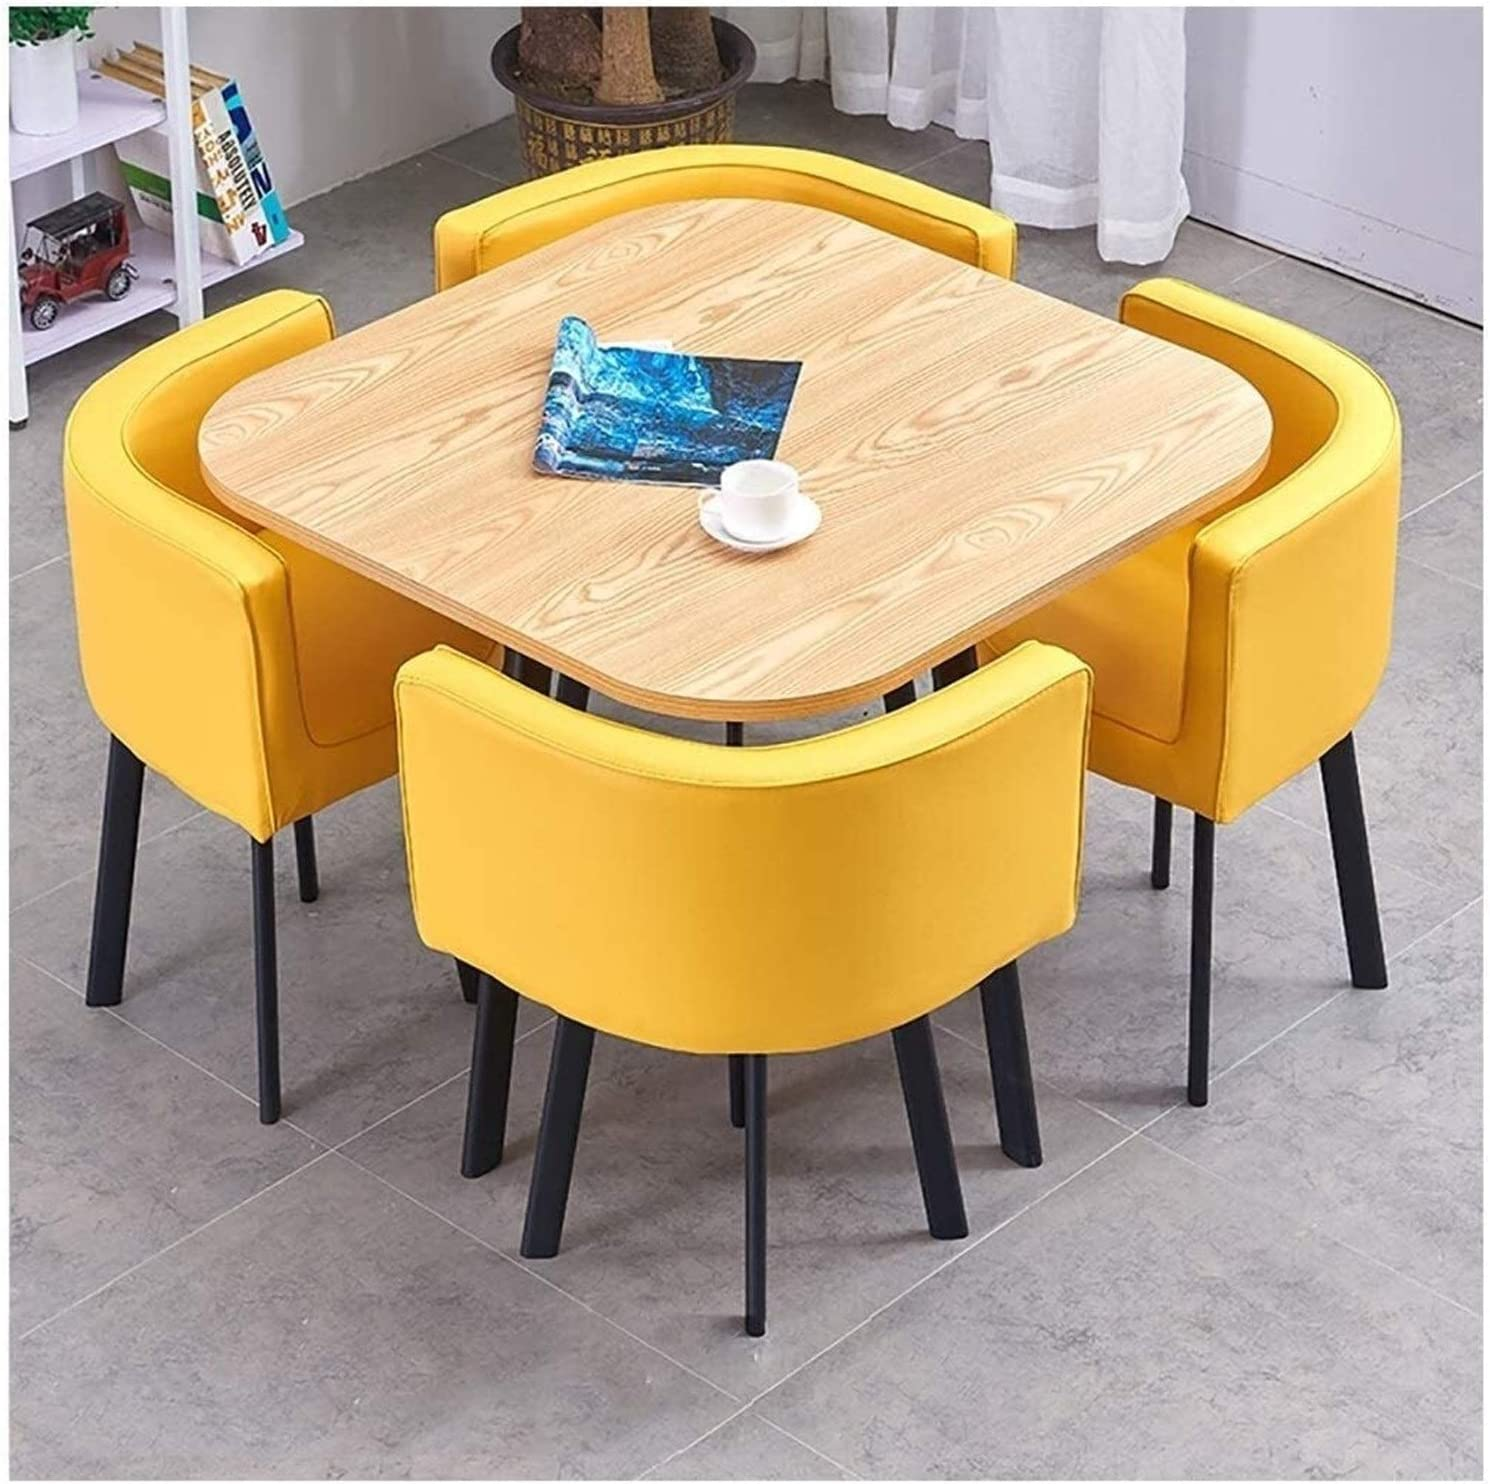 Dining Table and Chair Set Office Leisure NEW Max 77% OFF C